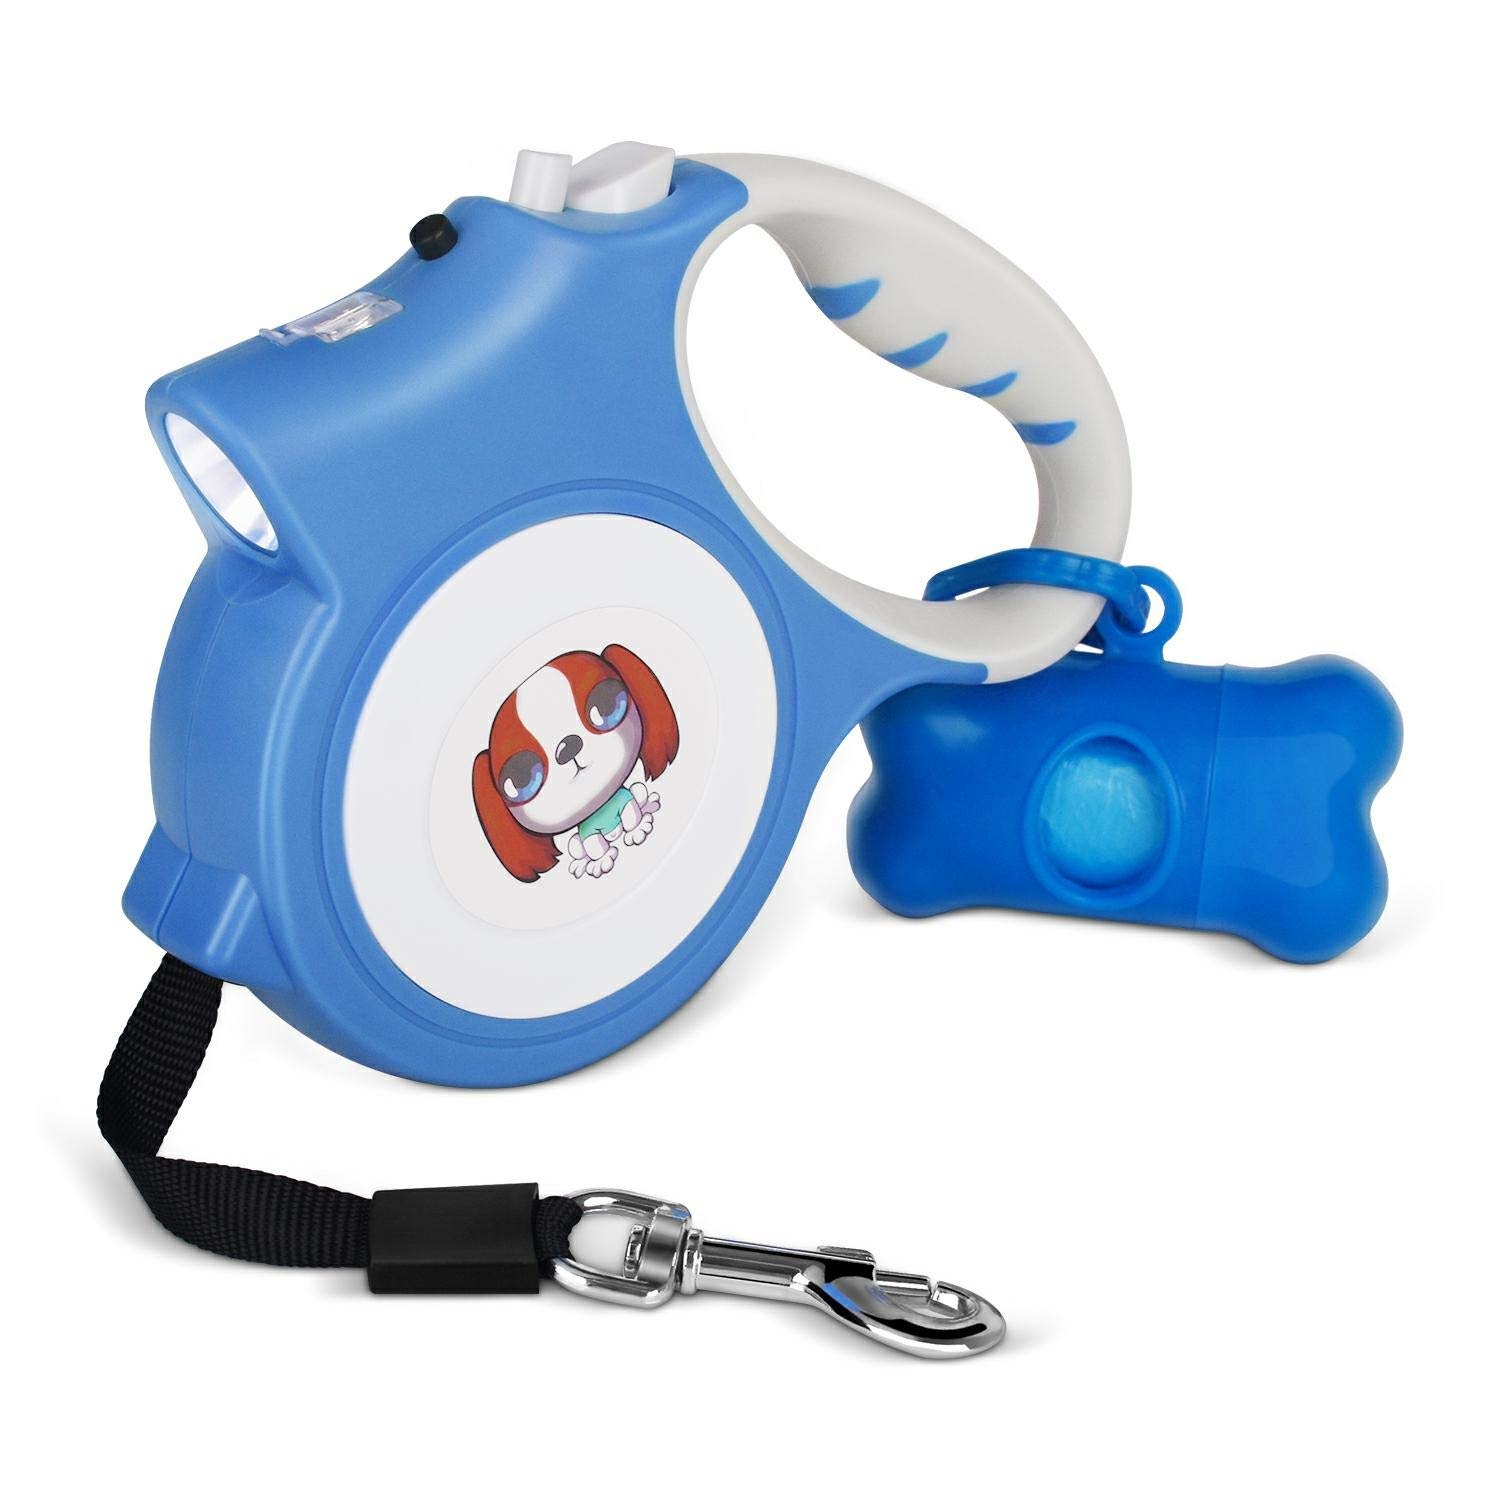 MOWIS Small Retractable Dog Leash with Anti-Slip Handle, 16.4ft Dog Walking Leash for Small Medium Dogs up to 55lbs, 360°Tangle Free, LED Light & Dog Waste Dispenser Bags Included